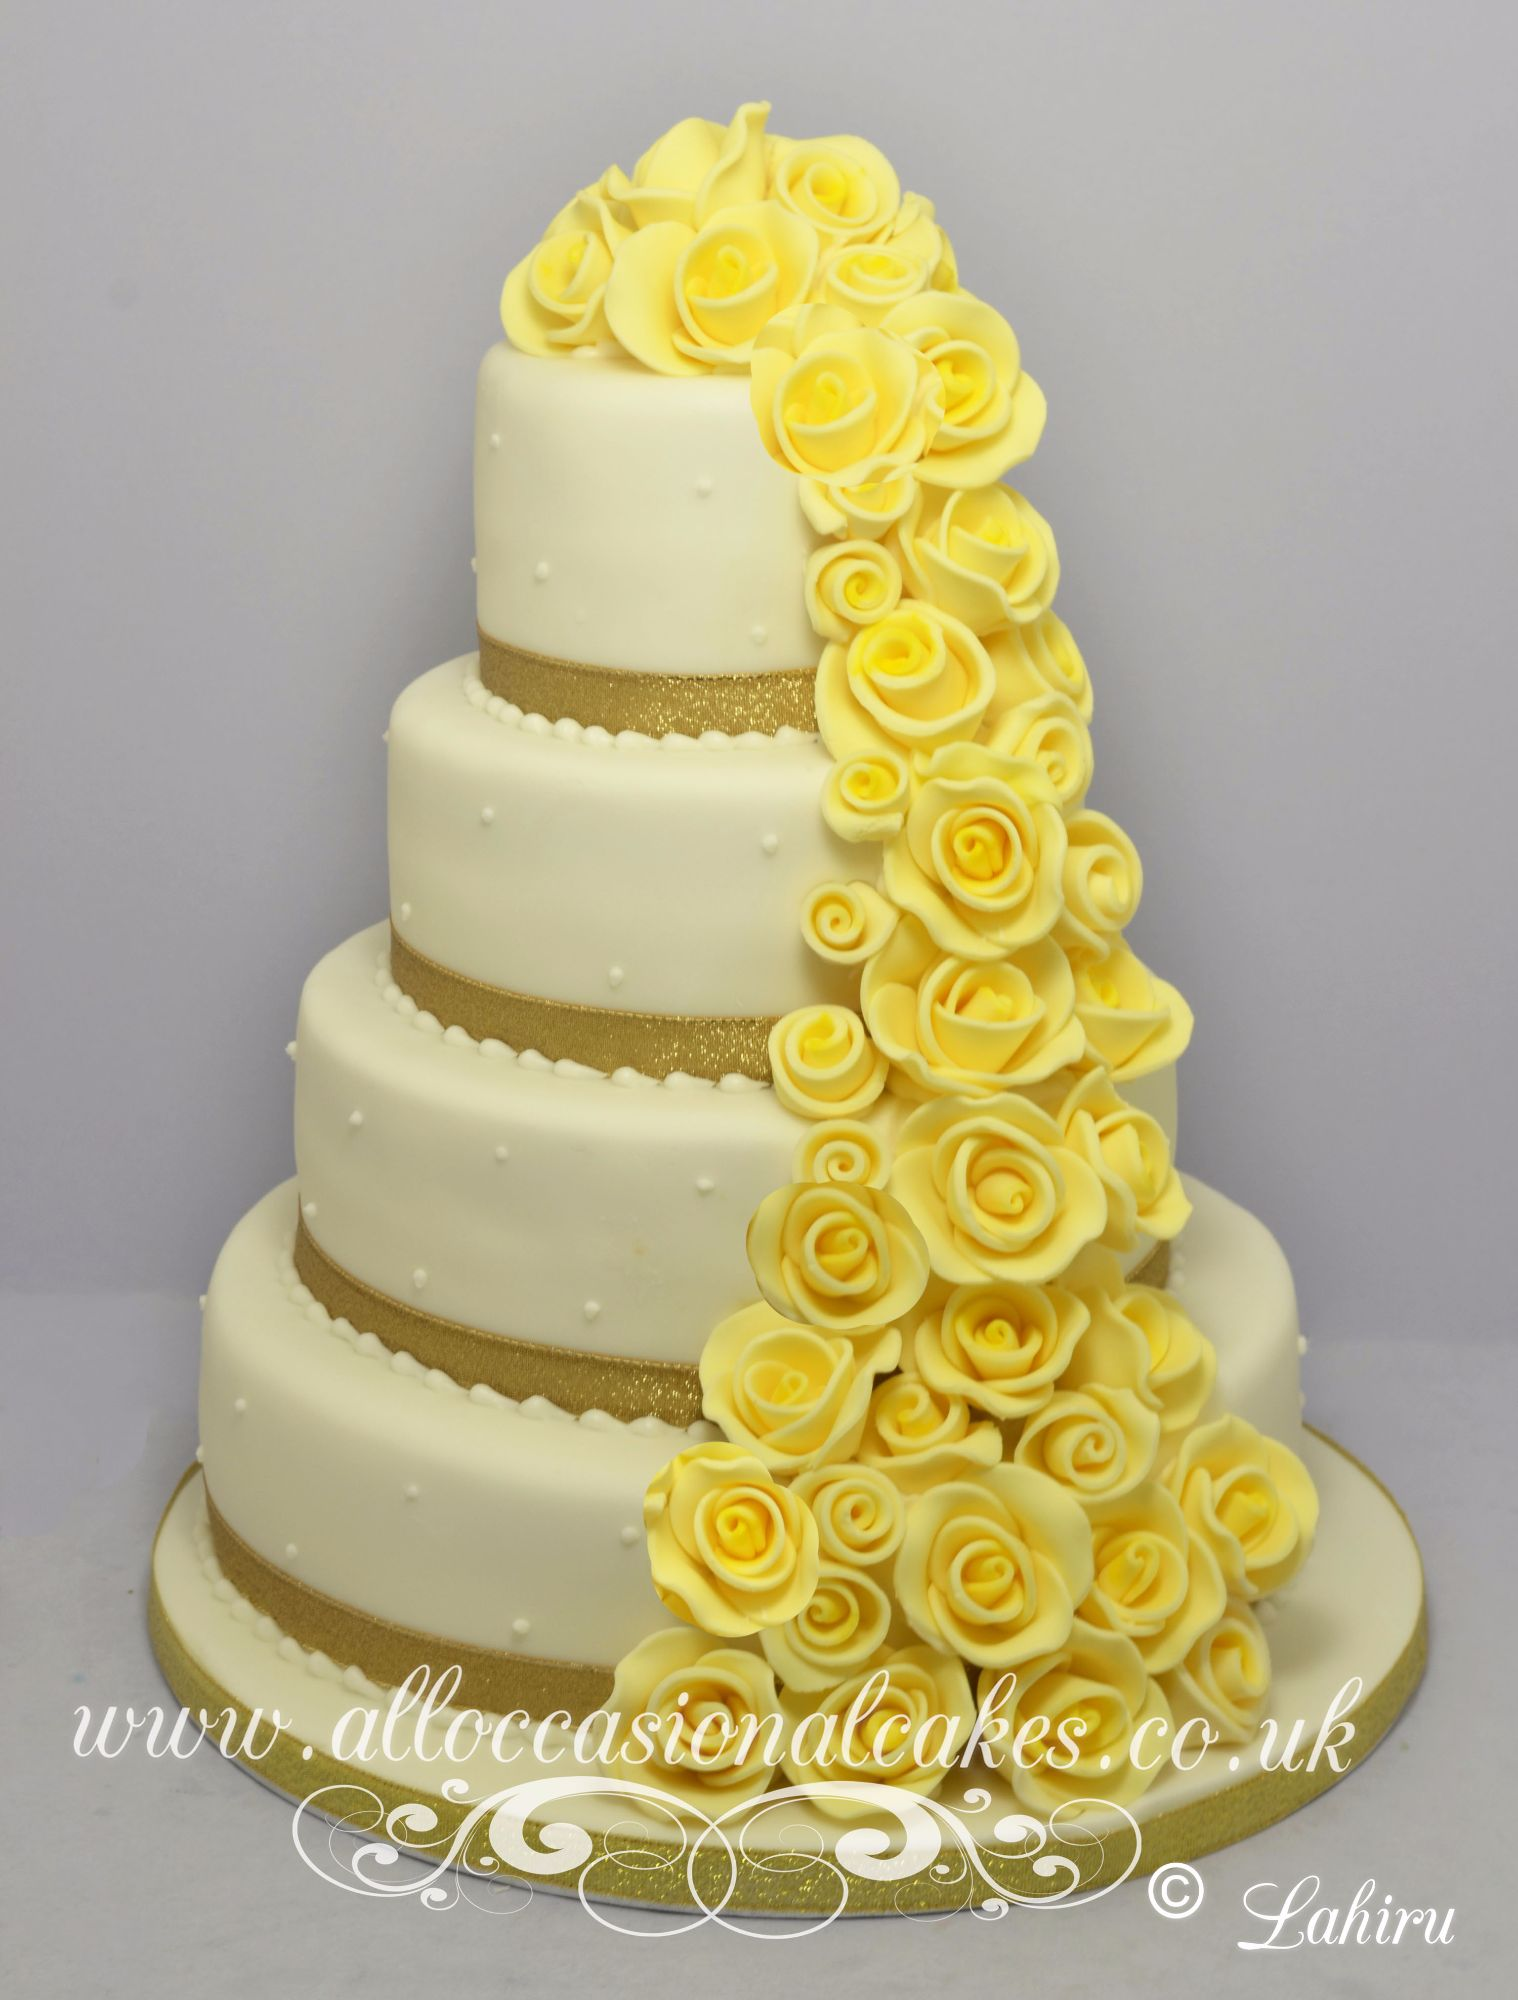 Yellow rose cascade wedding cake bristol